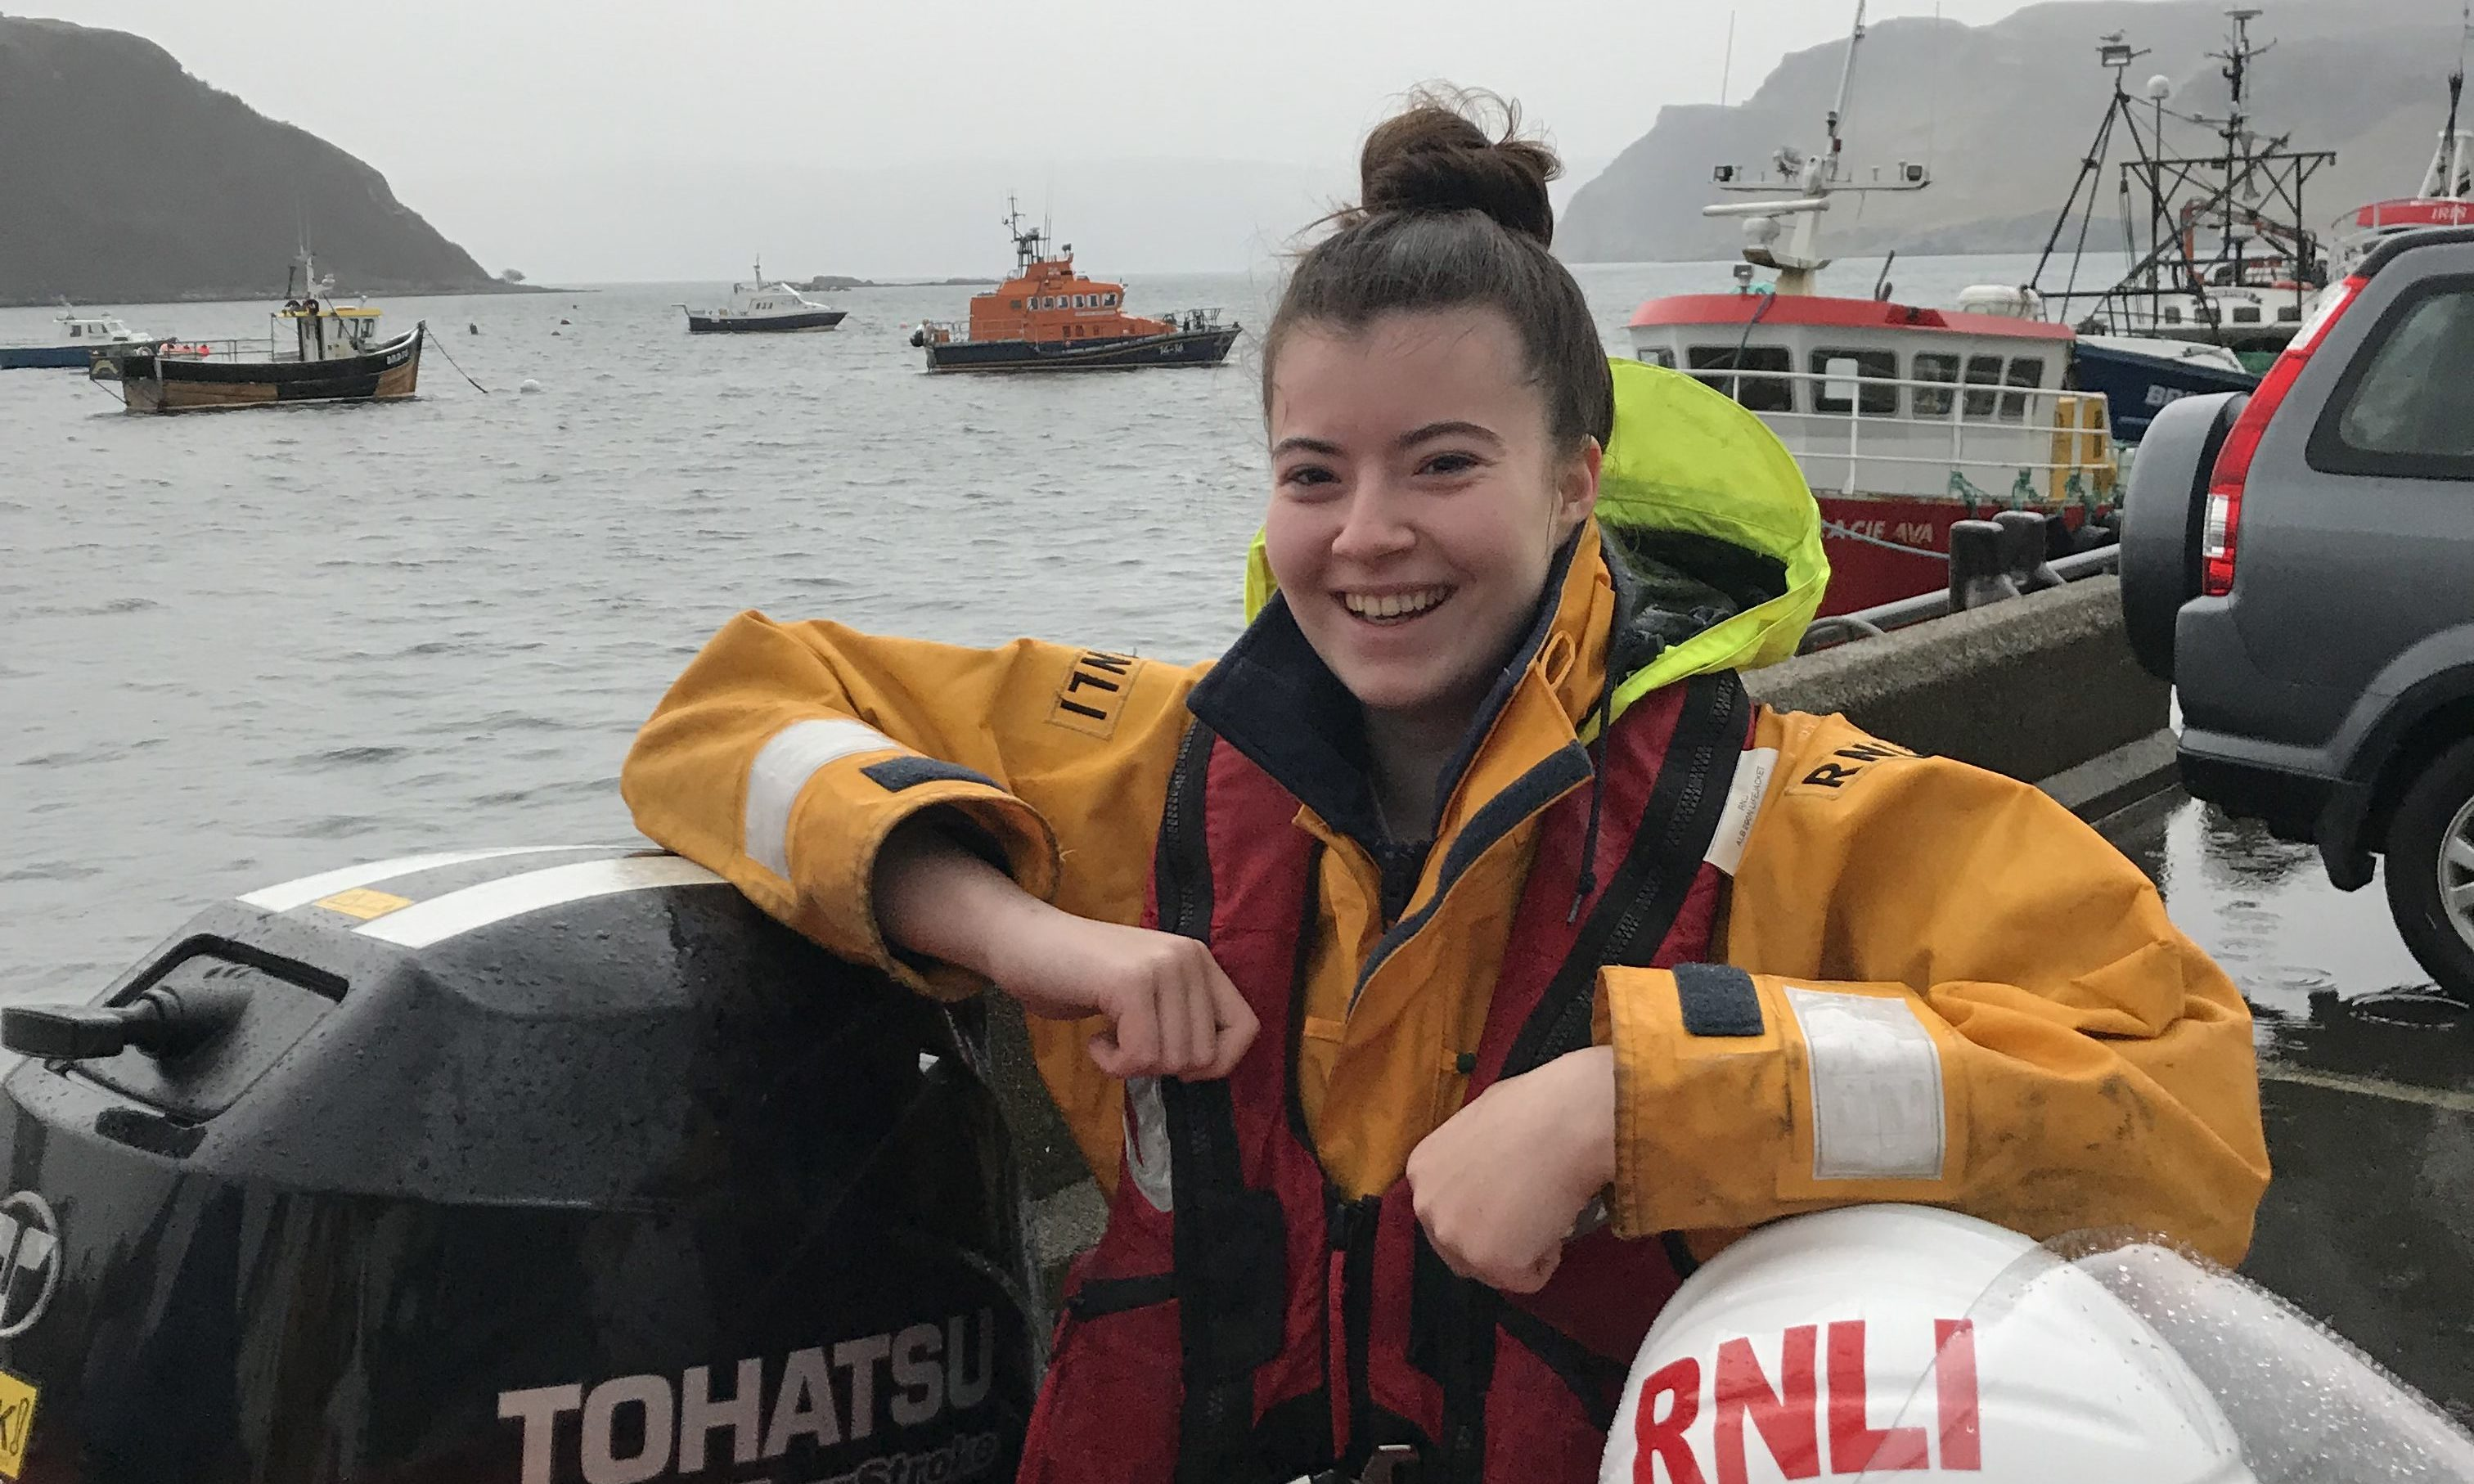 Chloe Urquhart has been juggling her time studying medicine at Aberdeen University as well as volunteering at the lifeboat station in Aberdeen